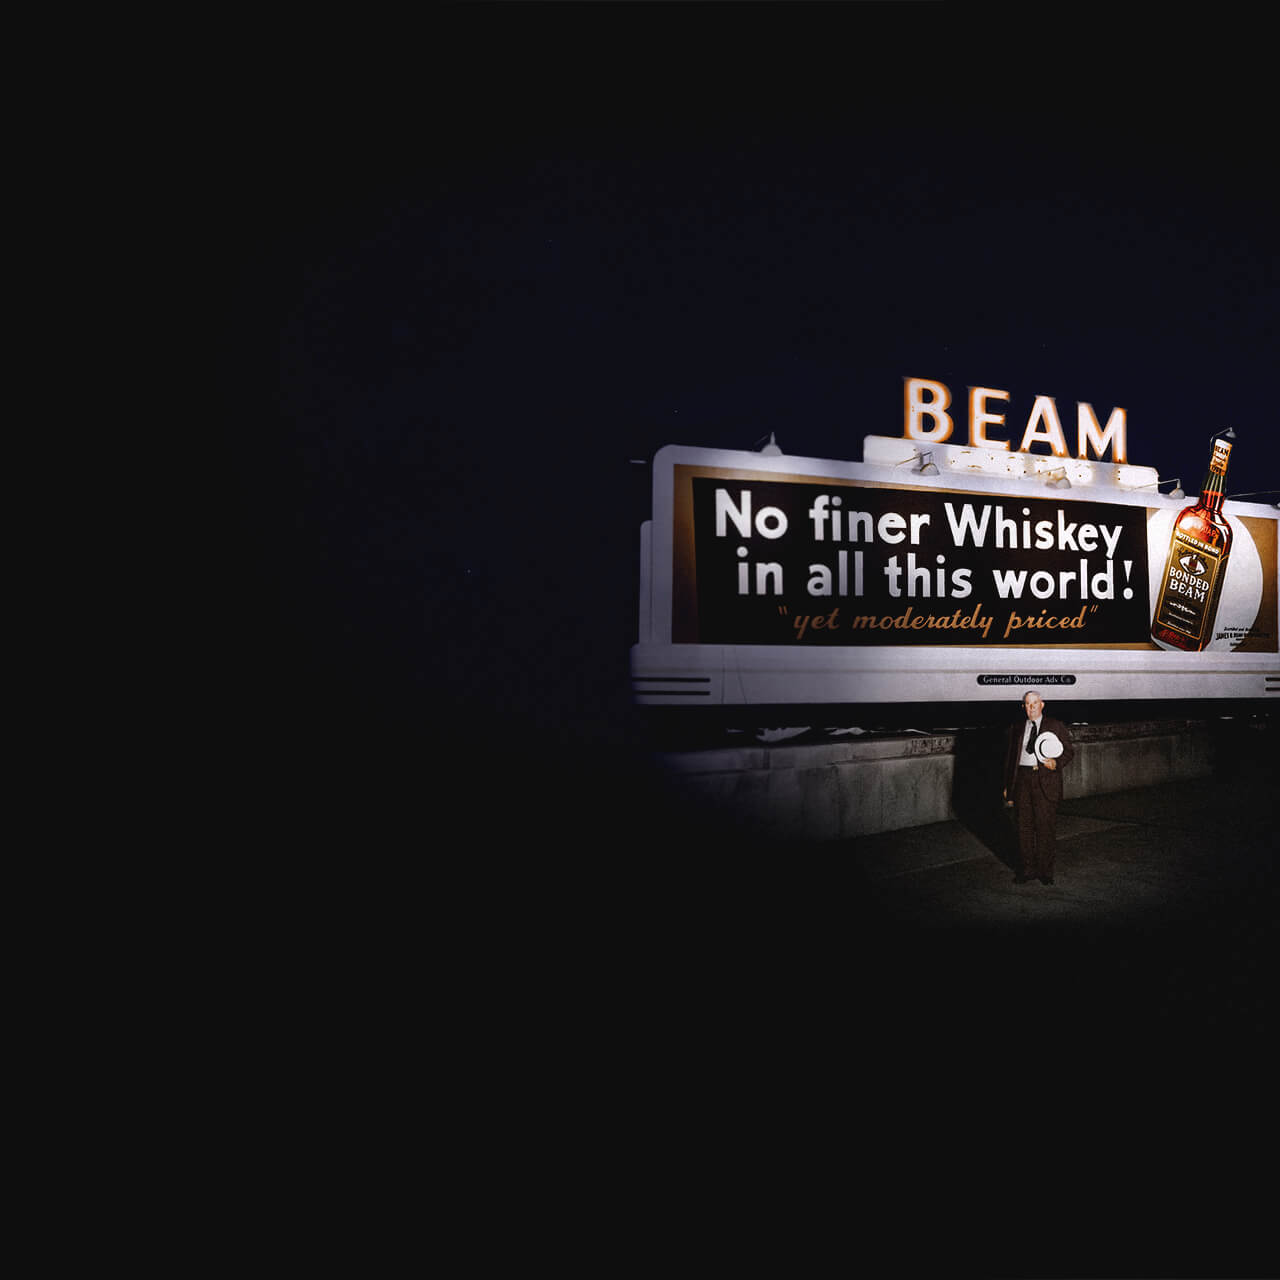 James B. Beam standing in front of a billboard.